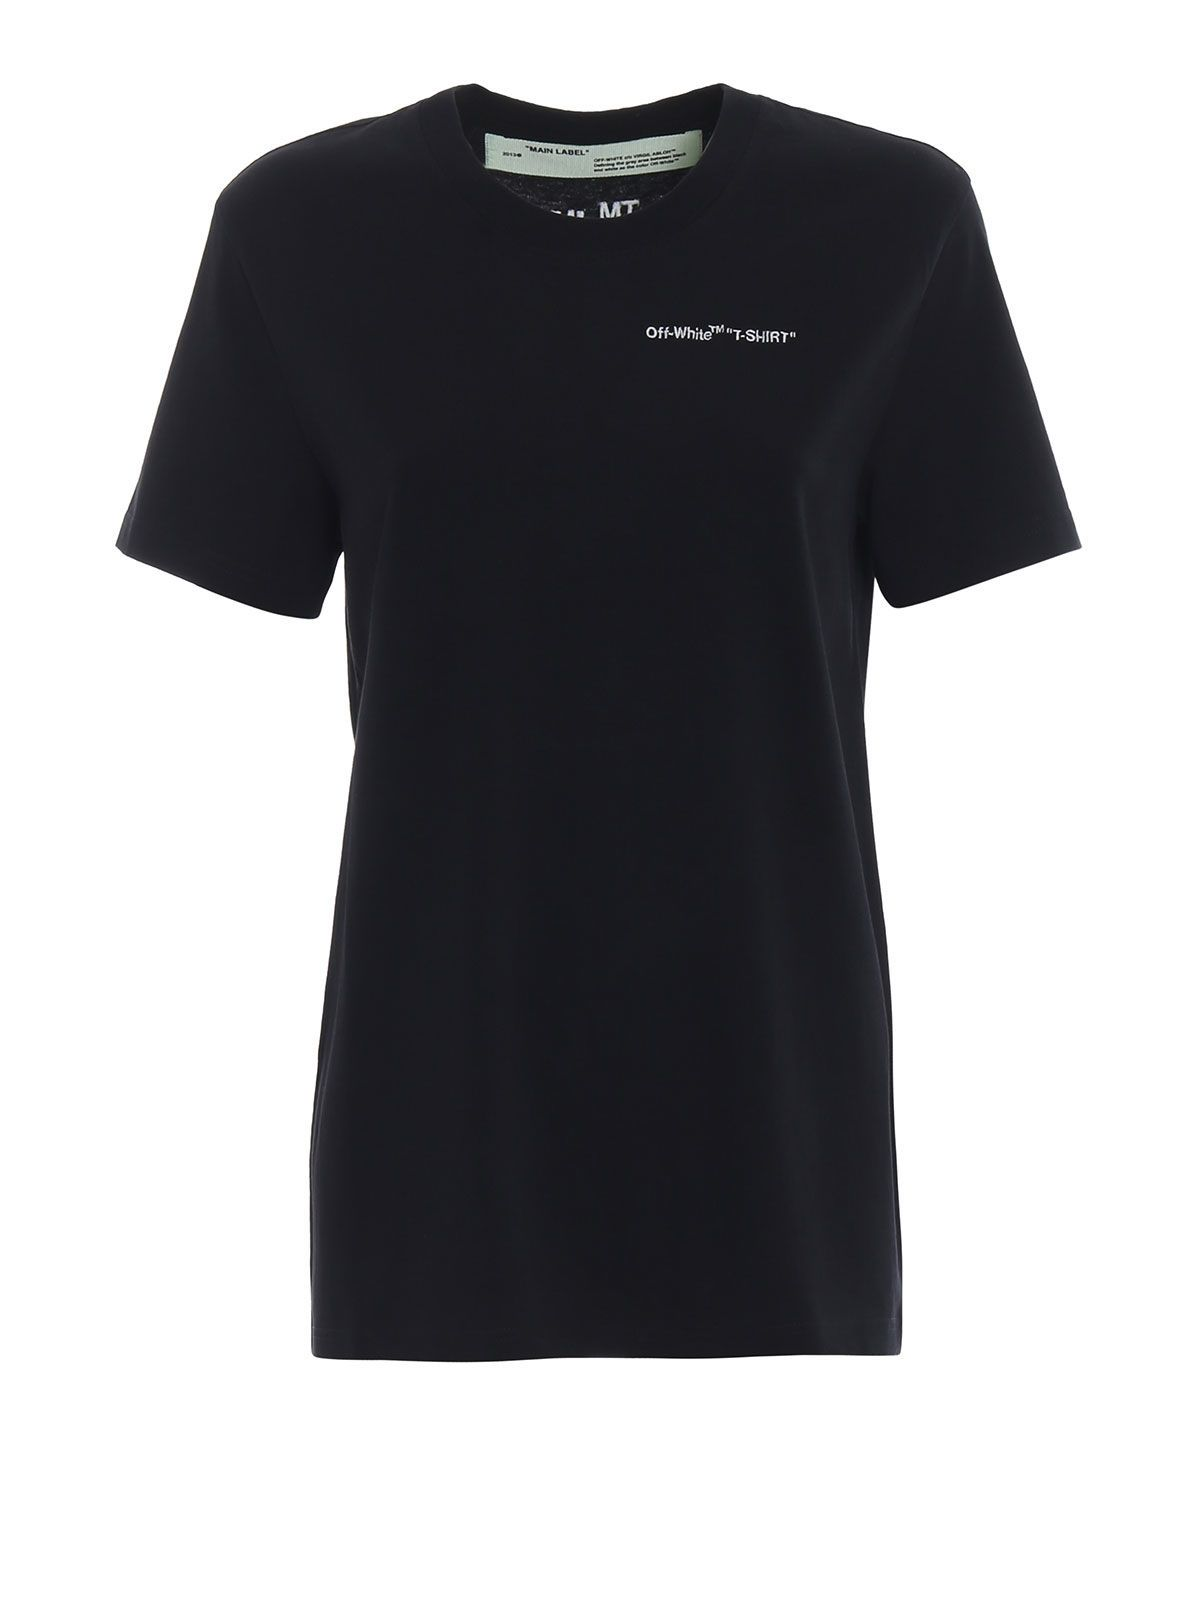 OFF WHITE LOGO EMBROIDERED T-SHIRT